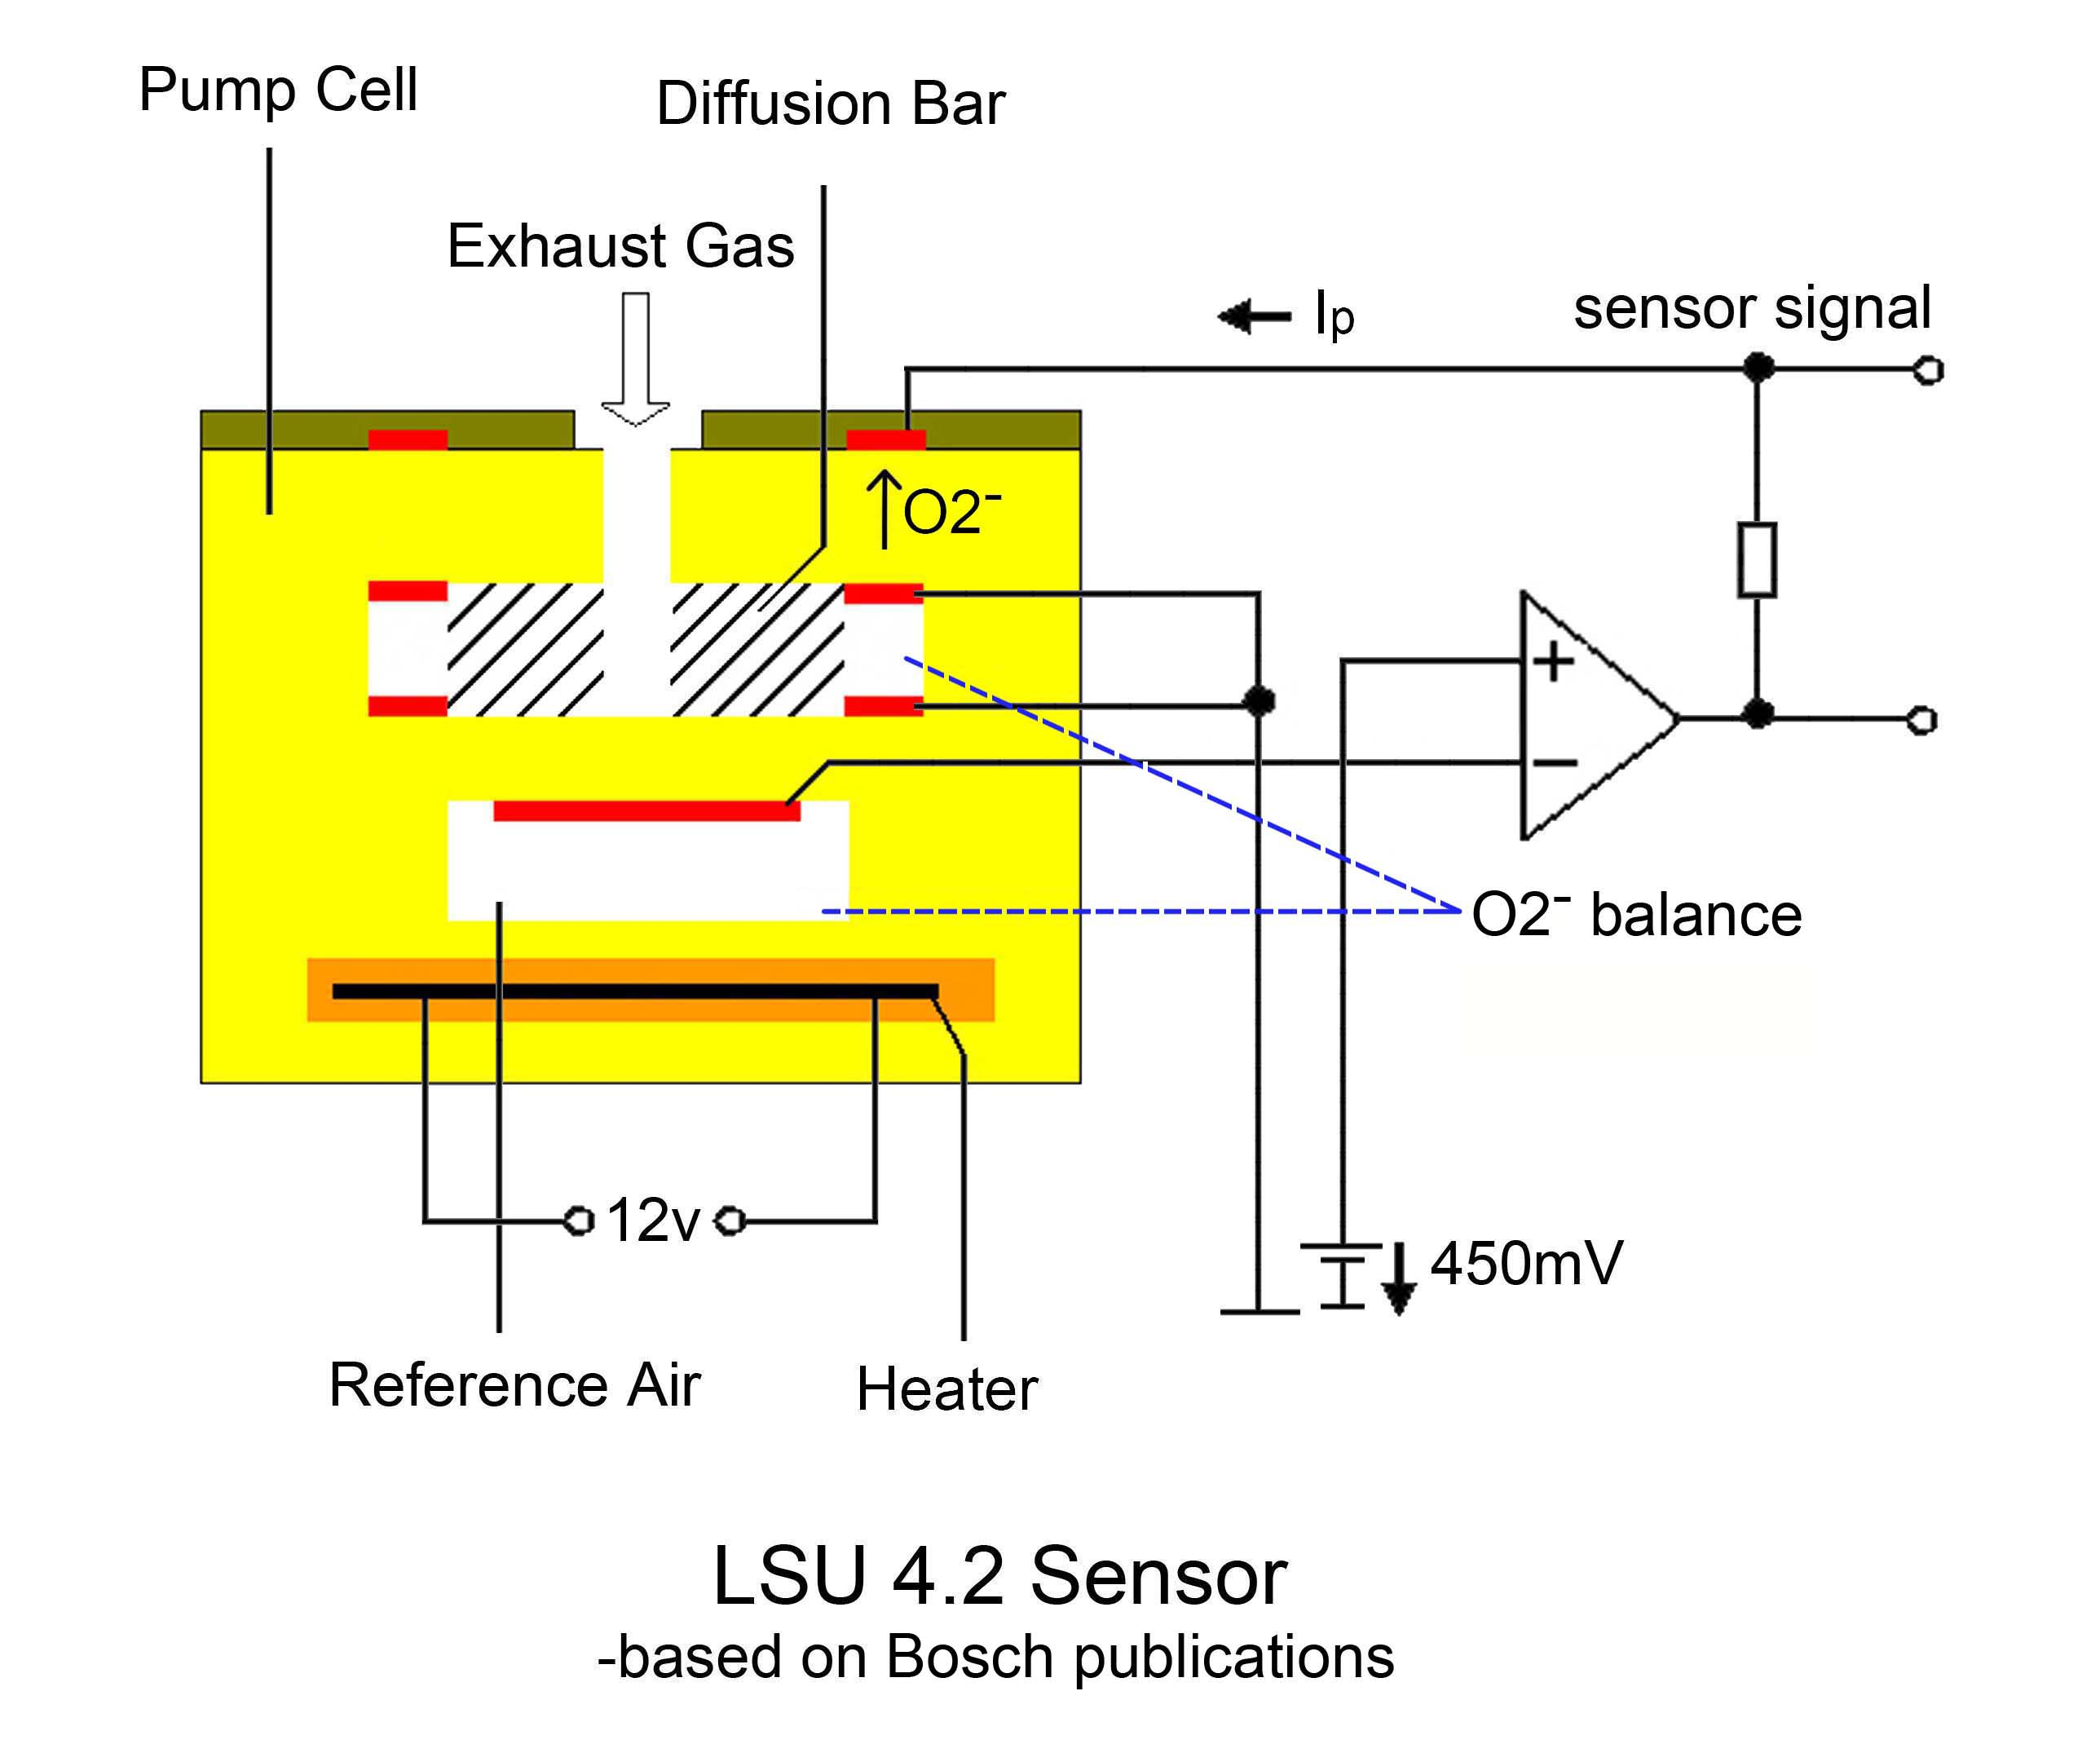 Bosch Maf Sensor Wiring Diagram Manual : Bosch lsu is superior to sensors news ecotrons